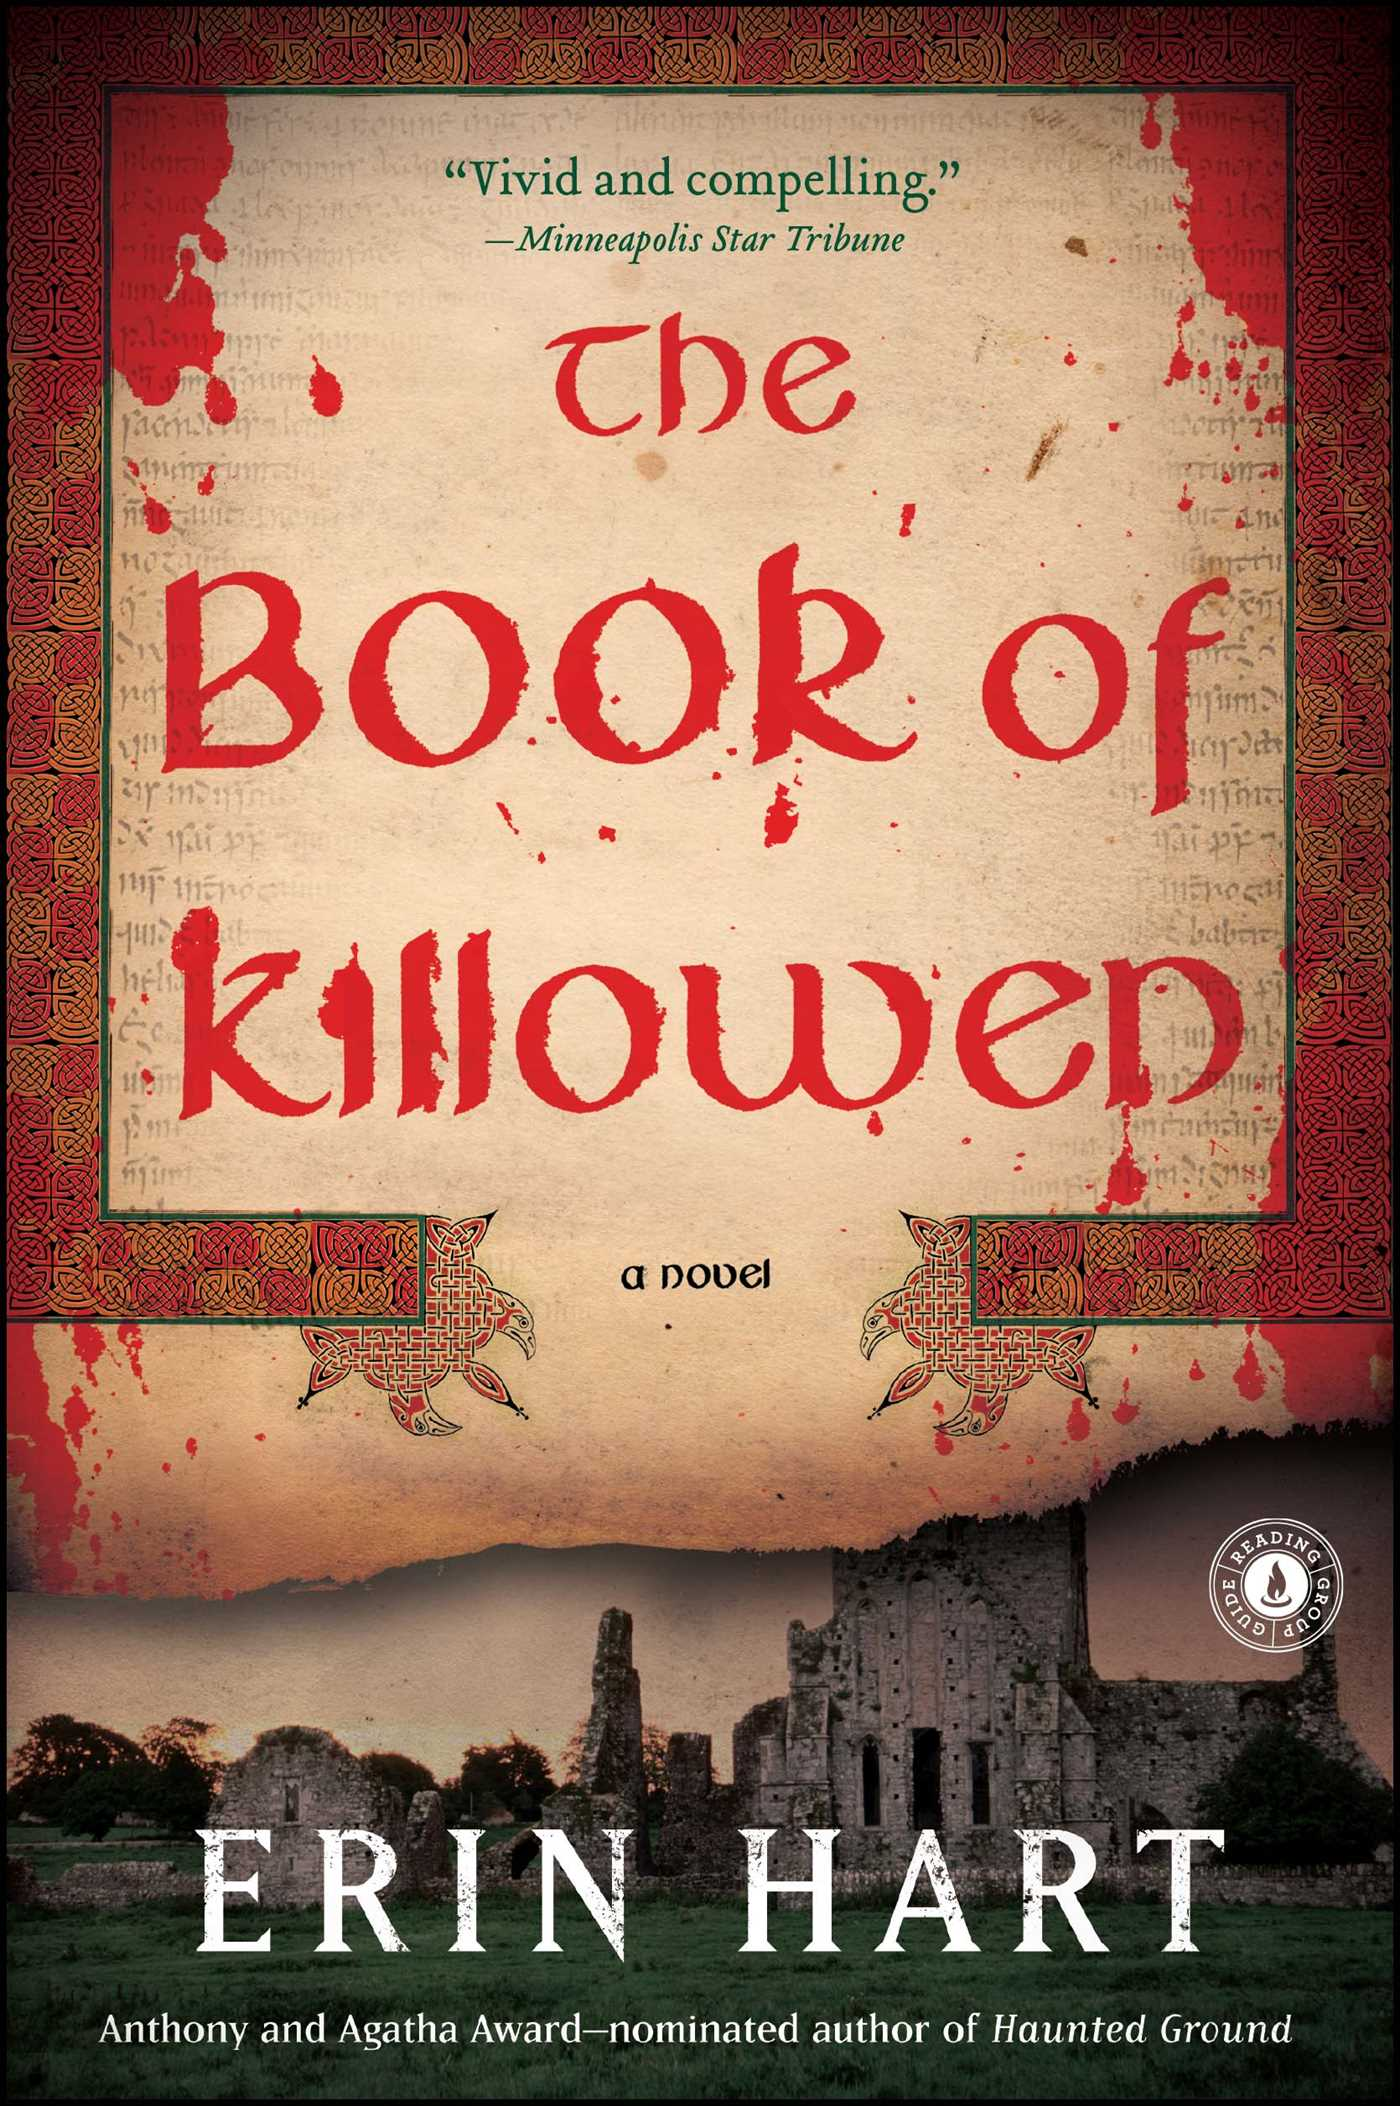 The book of killowen 9781451634853 hr